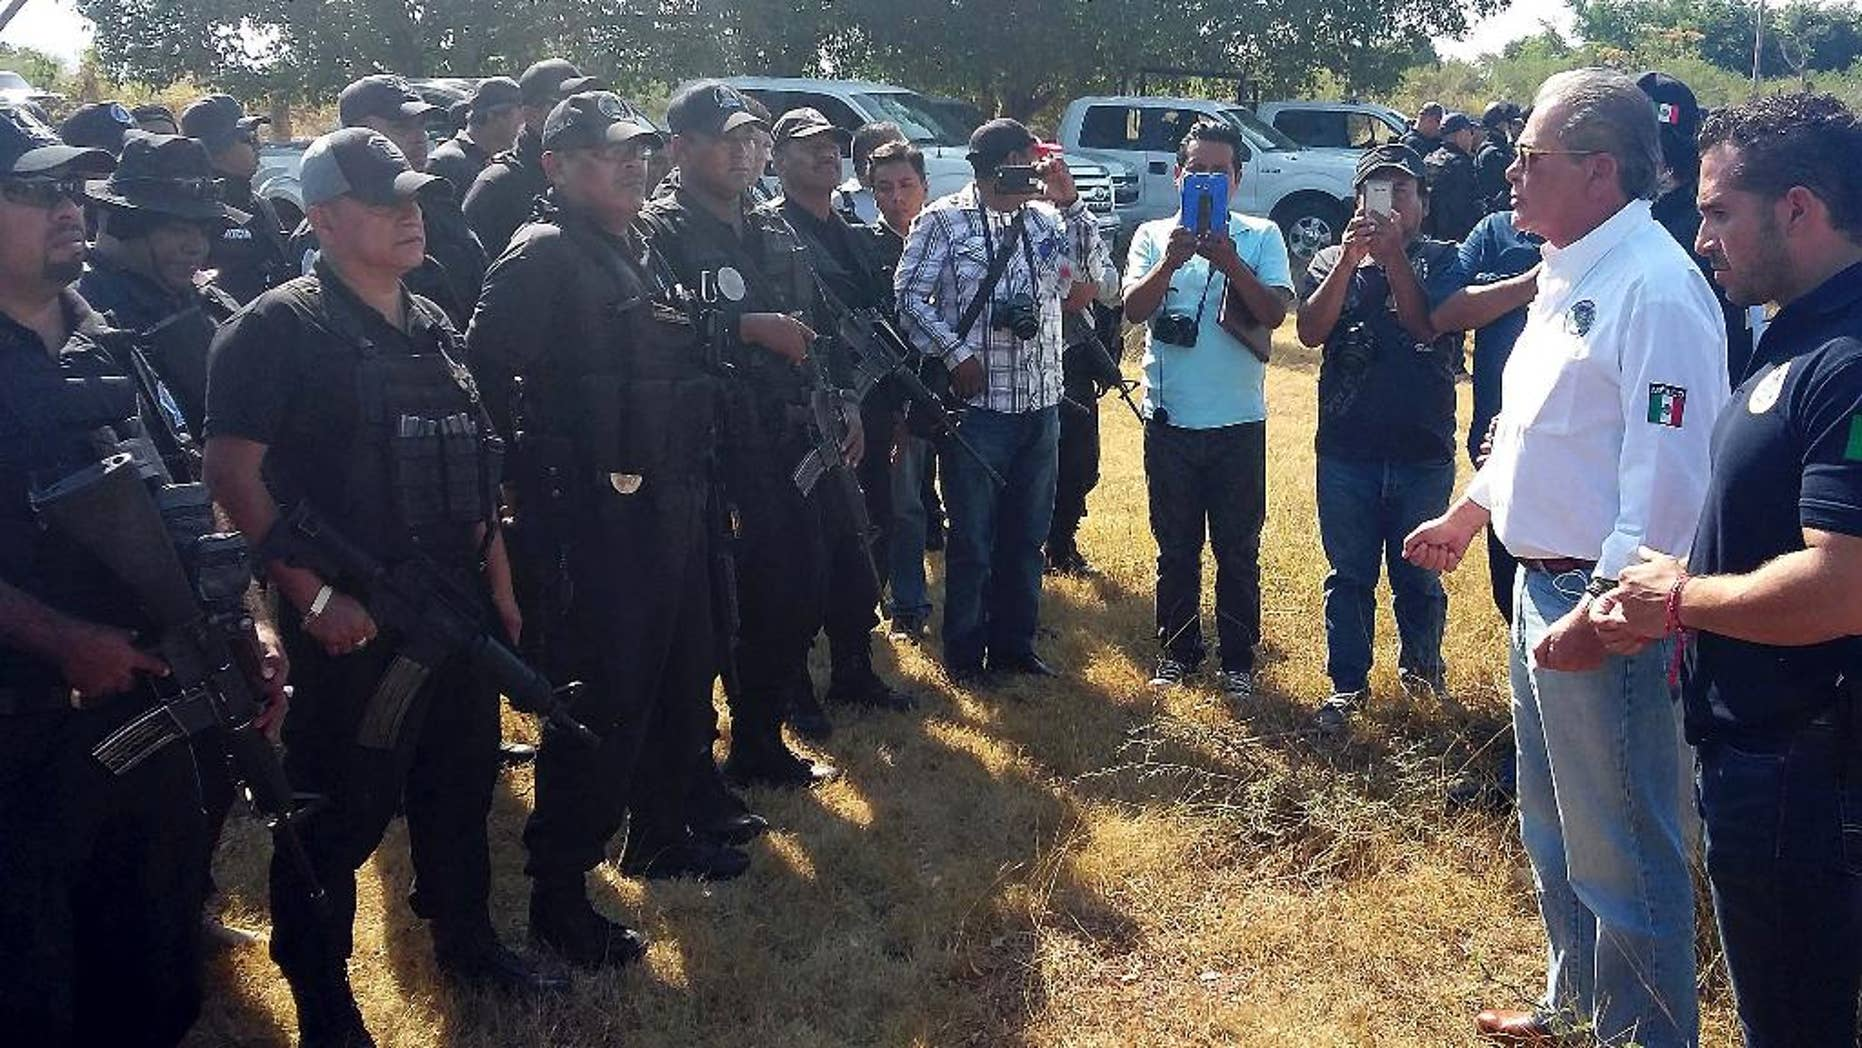 In this photo released by Guerrero state Attorney Generals Office, Javier Olea, attorney general of Guerrero state, right, talks to police at the start of a security operation in San Jeronimo El Grande, Mexico, Thursday, Nov. 24, 2016.  Soldiers and police fanned out Friday across Guerrero state, chasing a wounded gang leader and trying to quell a wave of violence that included the discovery of hidden graves holding dozens of bodies and a camp where gunmen stored the severed heads of nine rivals in a cooler. (Guerrero state Attorney Generals Office via AP)